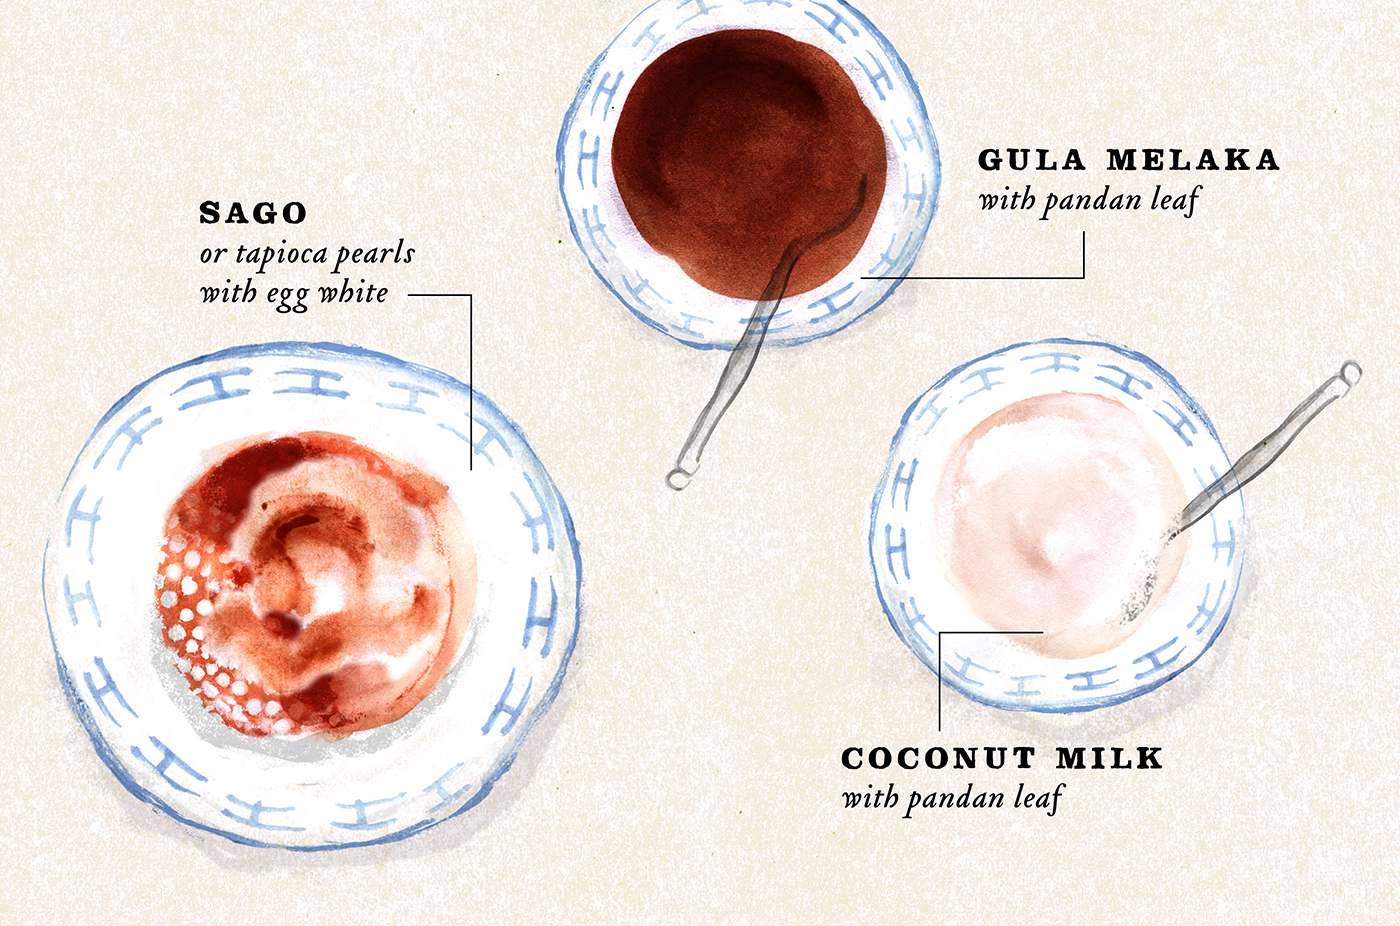 Sago Gula Melaka Recipe, Lauren Monaco Illustration